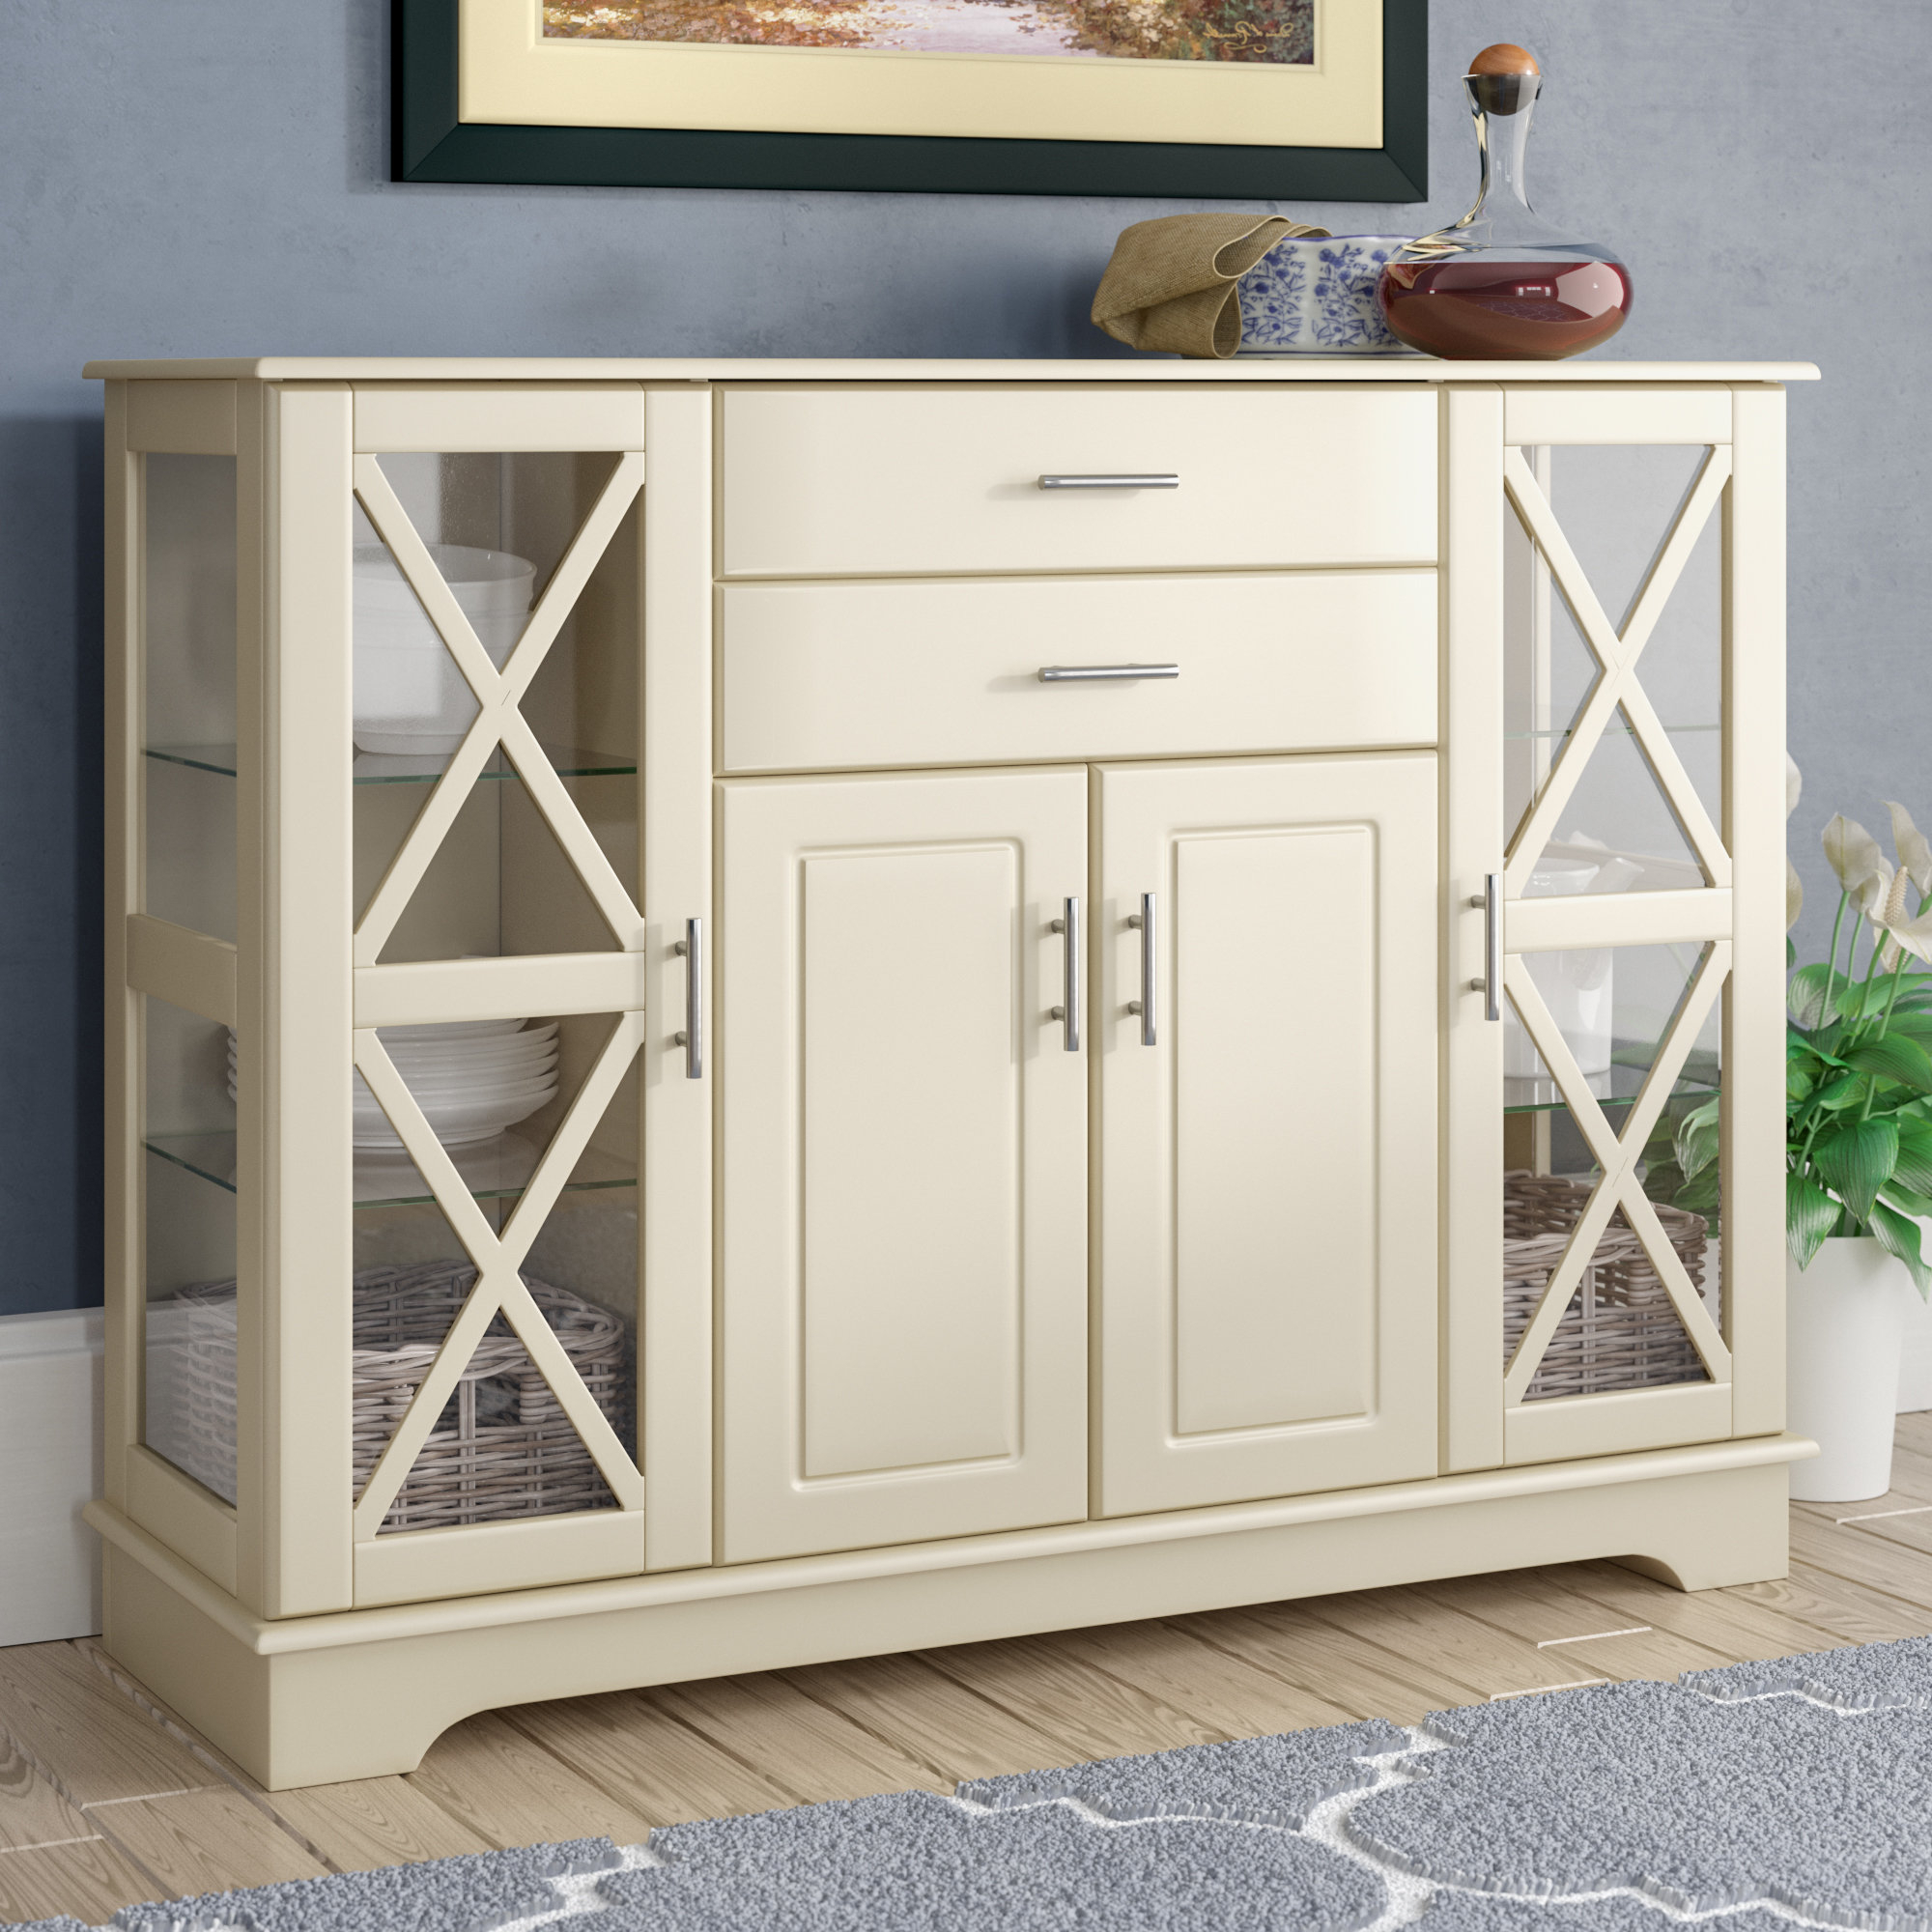 Antique Sideboards And Buffets | Wayfair in Avenal Sideboards (Image 4 of 30)